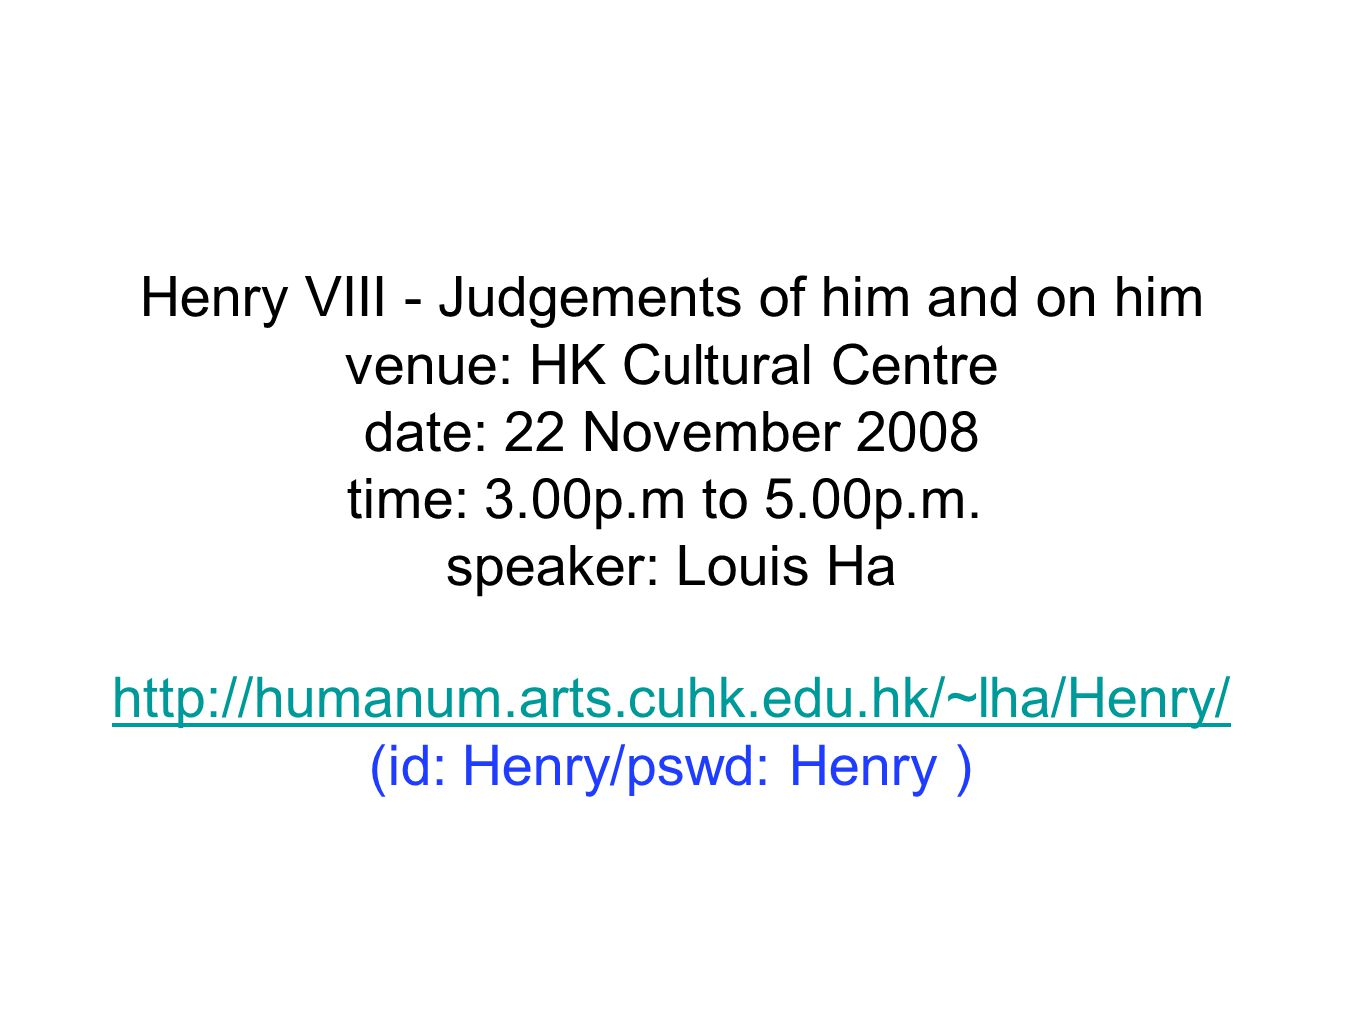 Henry VIII - Judgements of him and on him venue: HK Cultural Centre